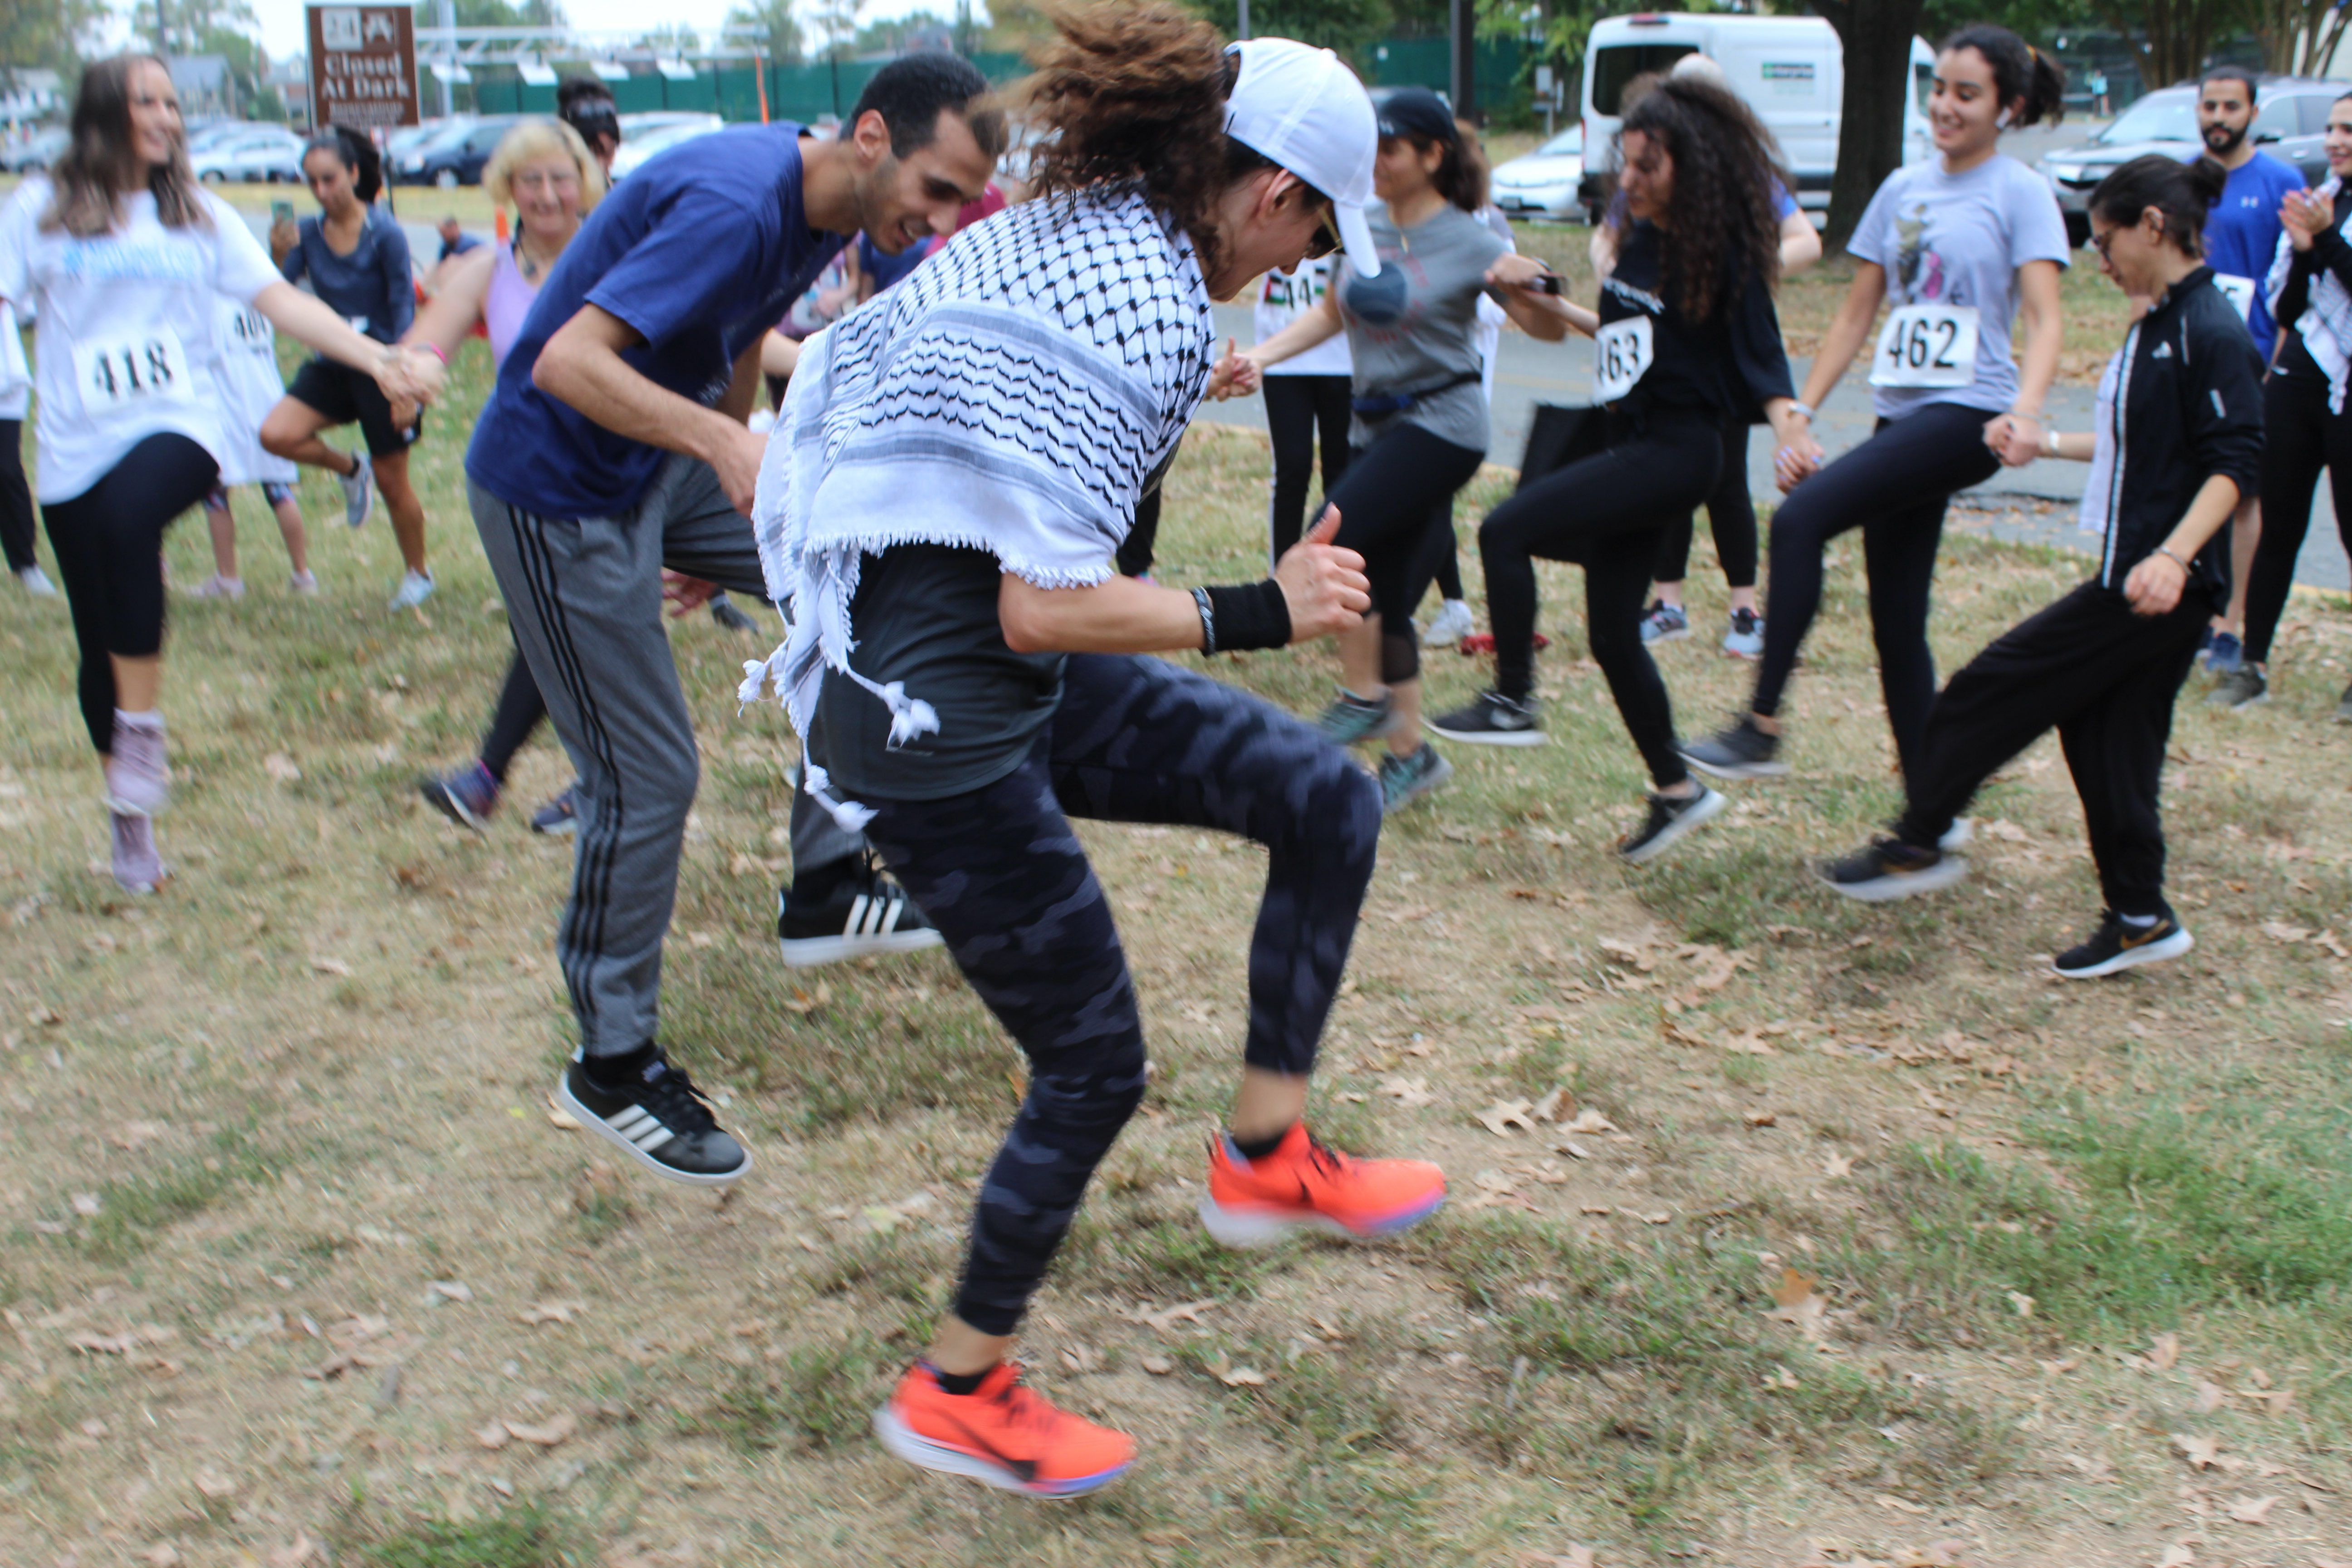 Two dancers take their dabka to another level after teaching beginners the basics at the Gaza 5k event (MEE/Sheren Khalel)